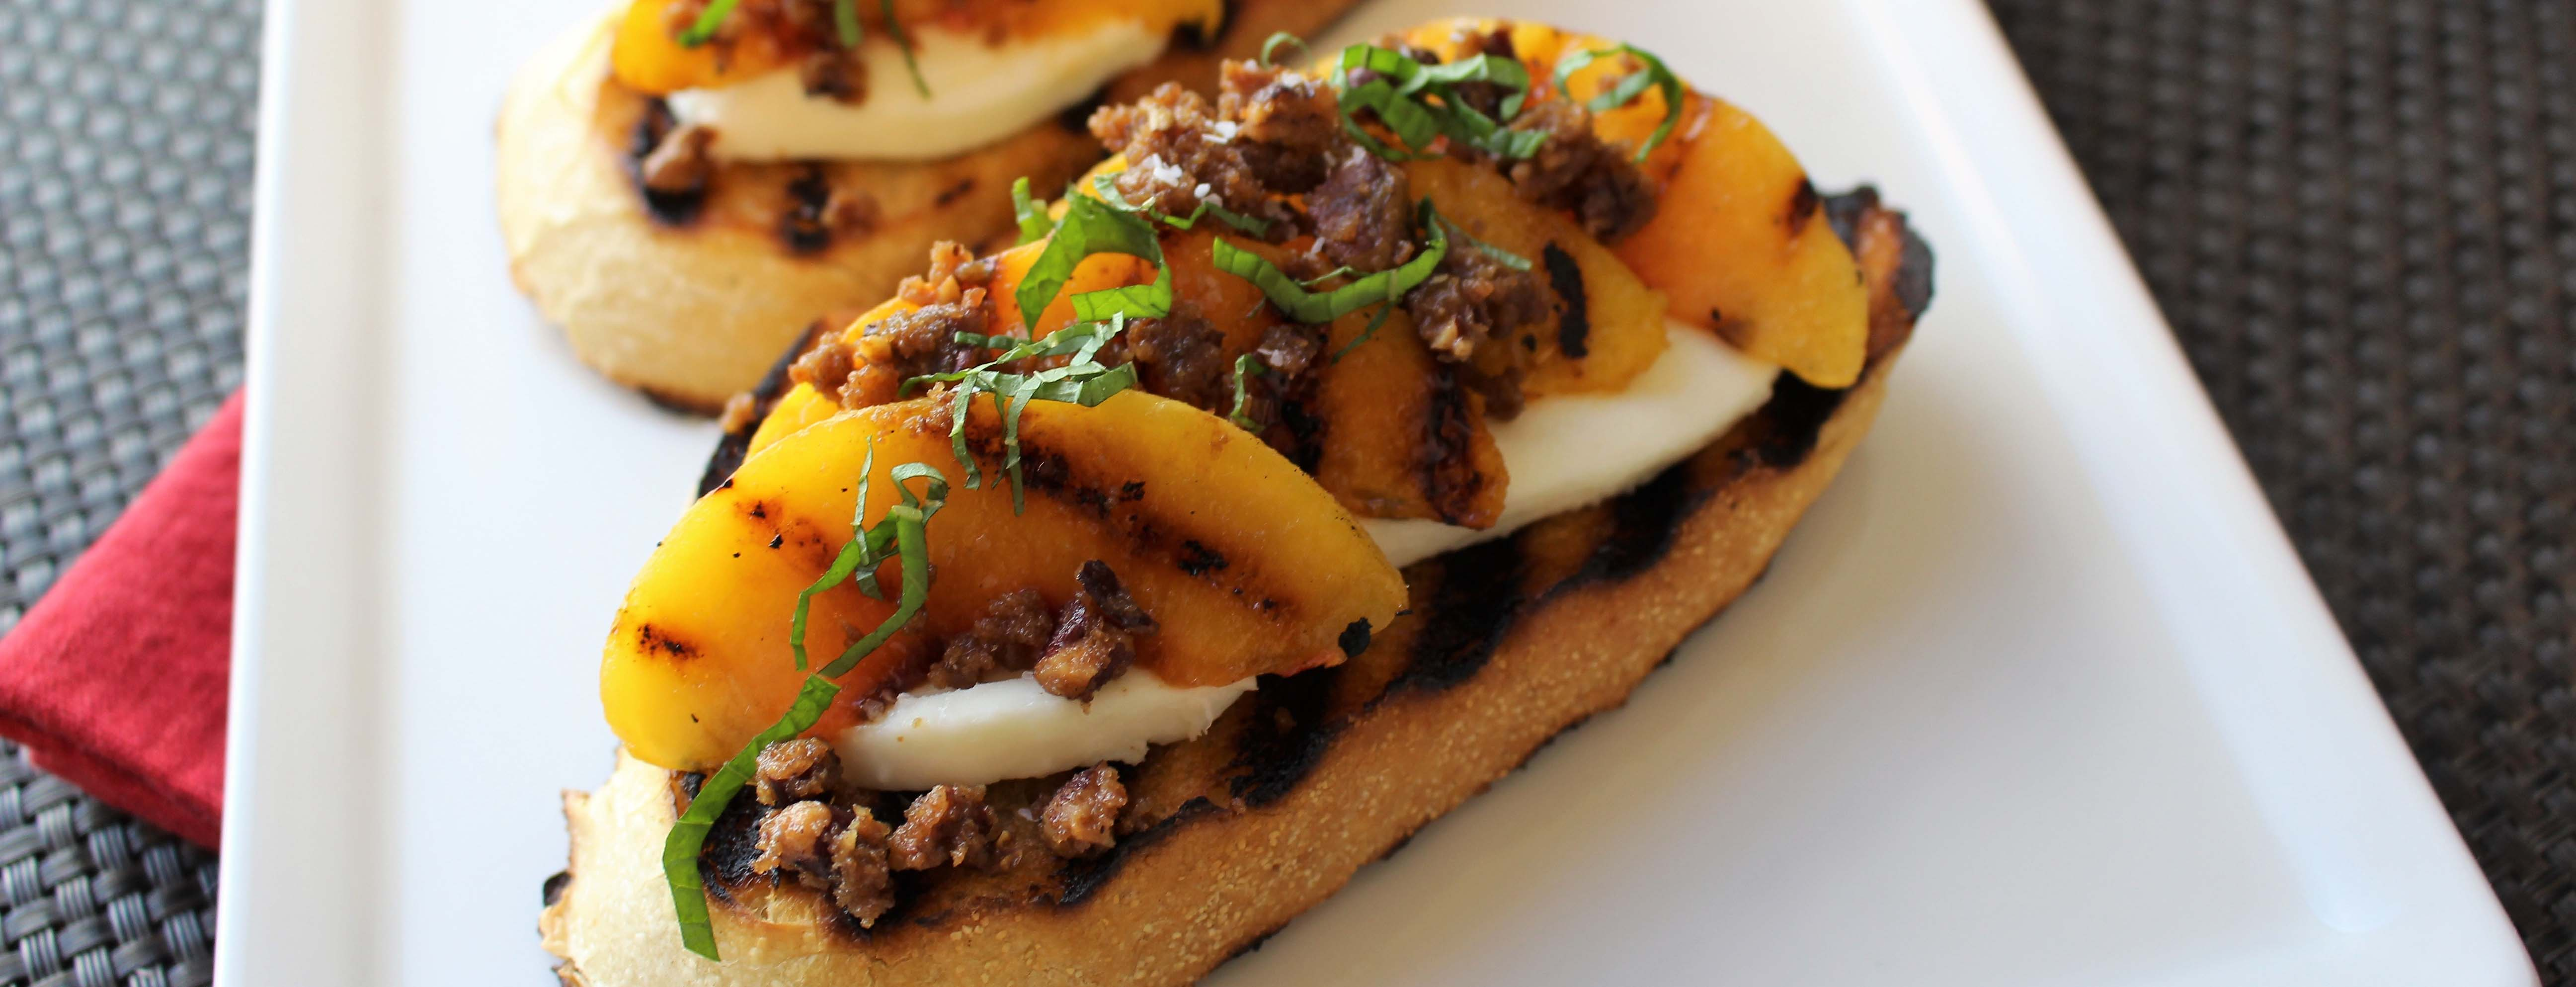 Photo of Grilled Peach Tartines with Burrata and Cardamom and Clove Crumble